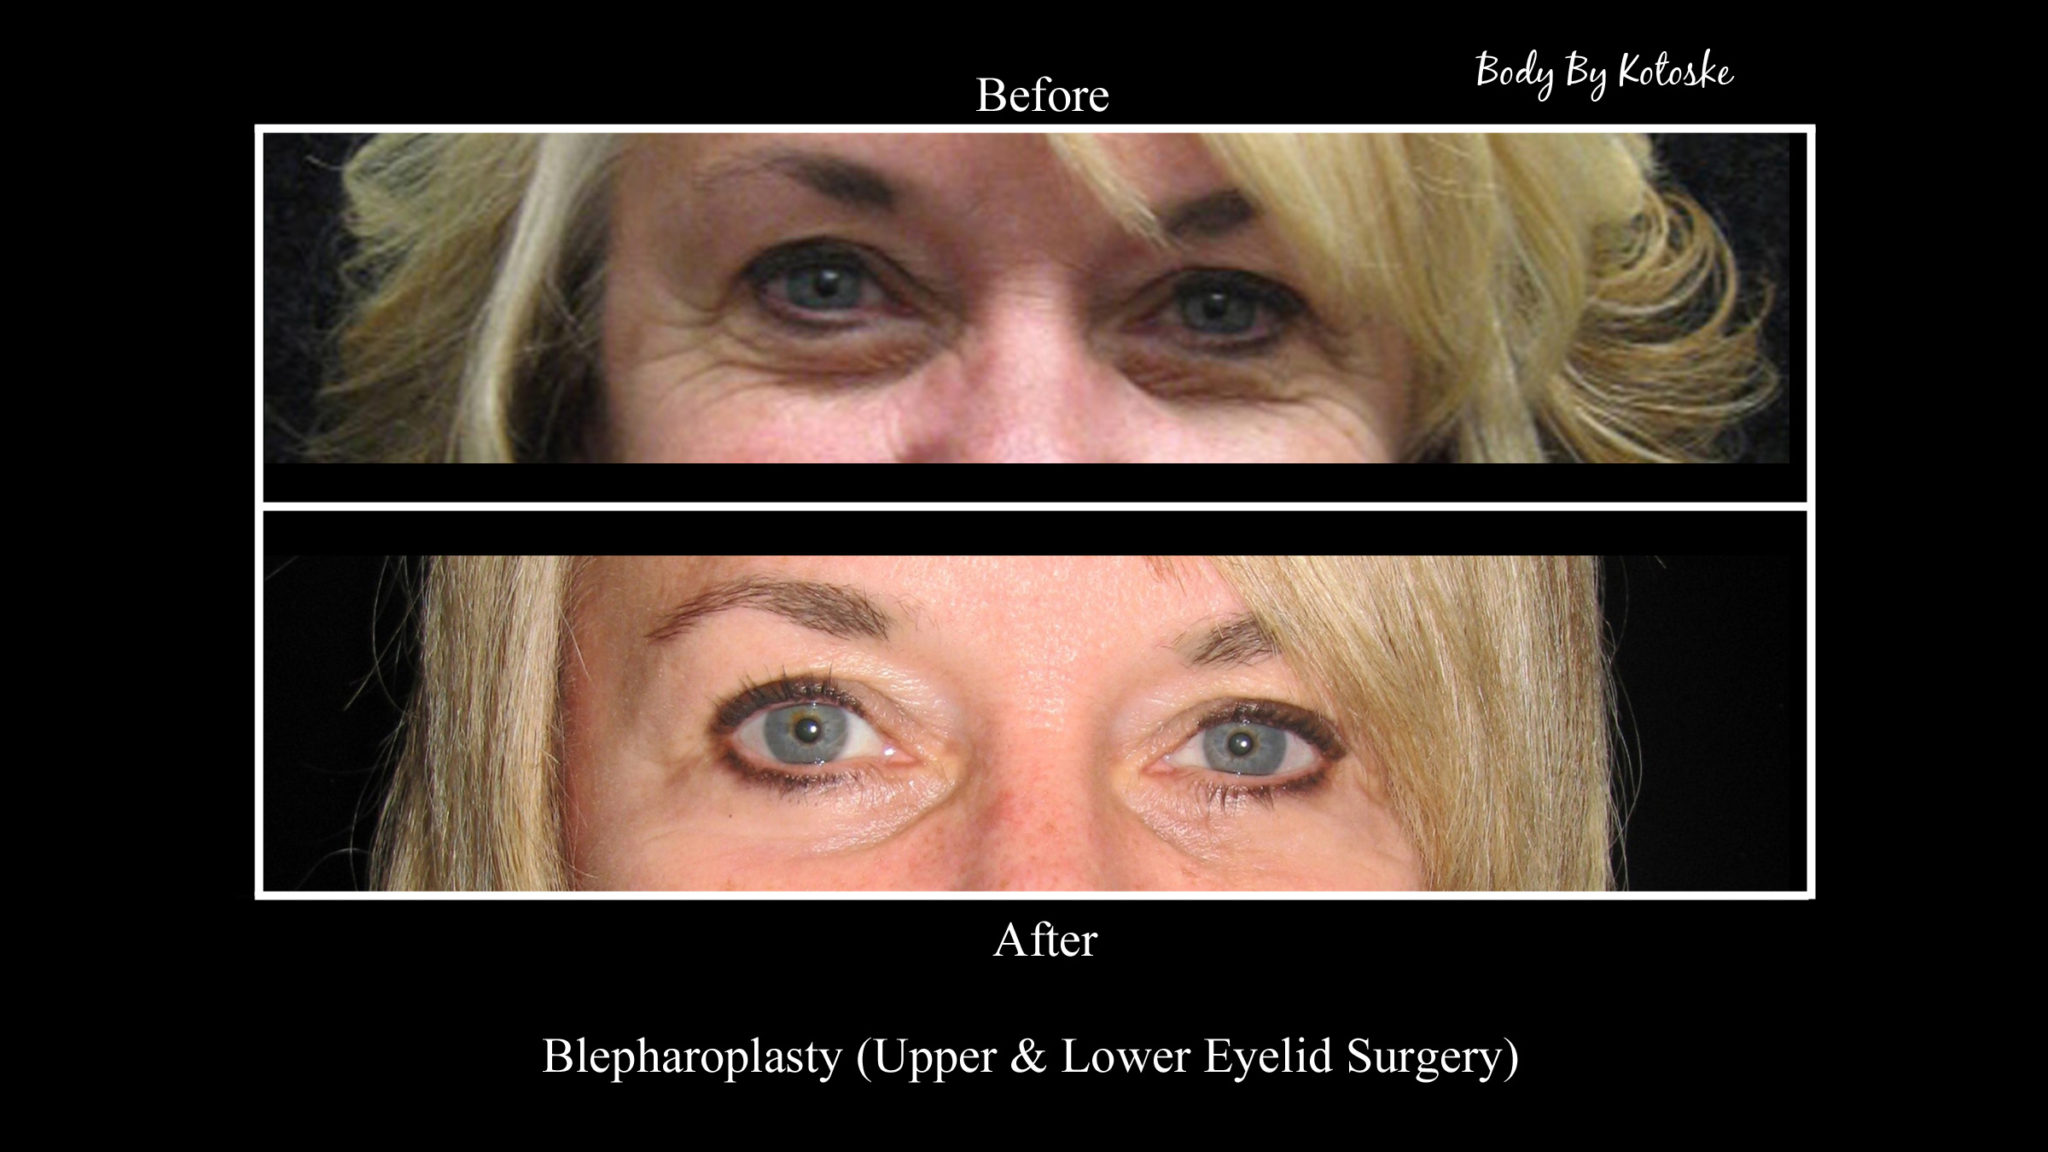 Before and After - Phoenix Cosmetic Surgeon | Body by Kotoske | Phoenix, AZ